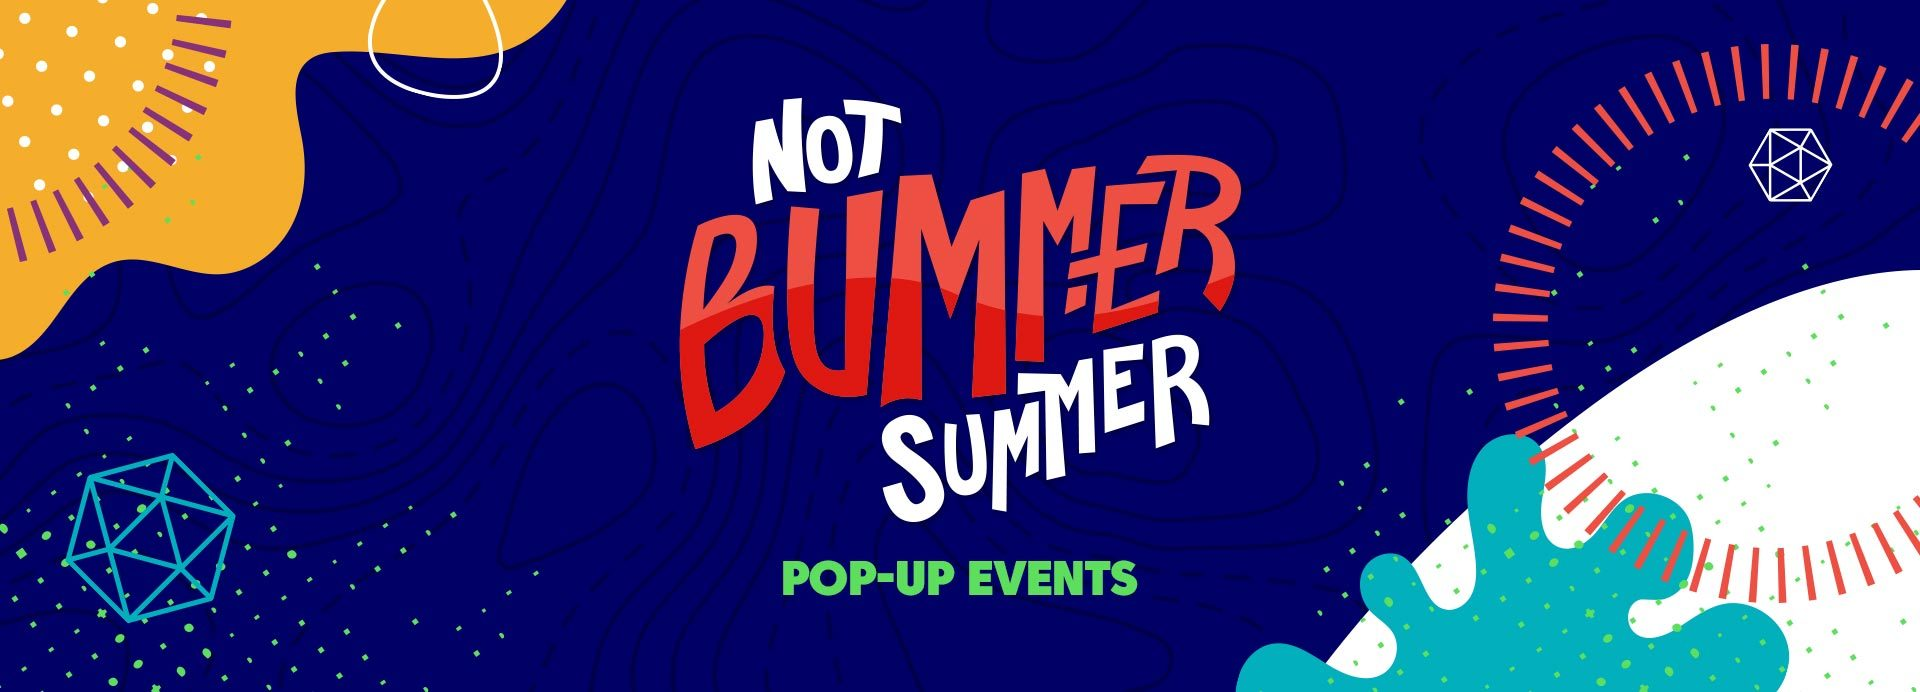 Kotm Not Bummer Summer Events Banner